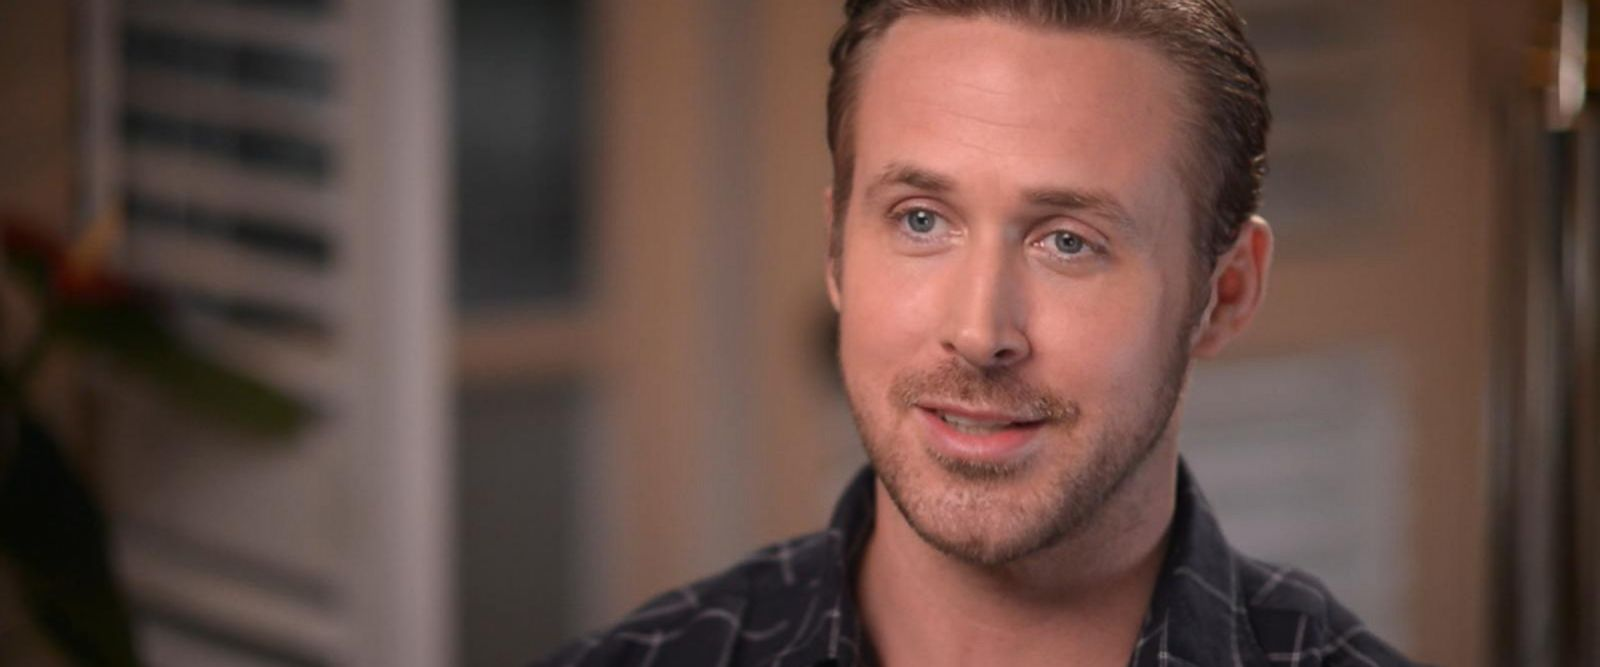 VIDEO: Oscar countdown with Ryan Gosling